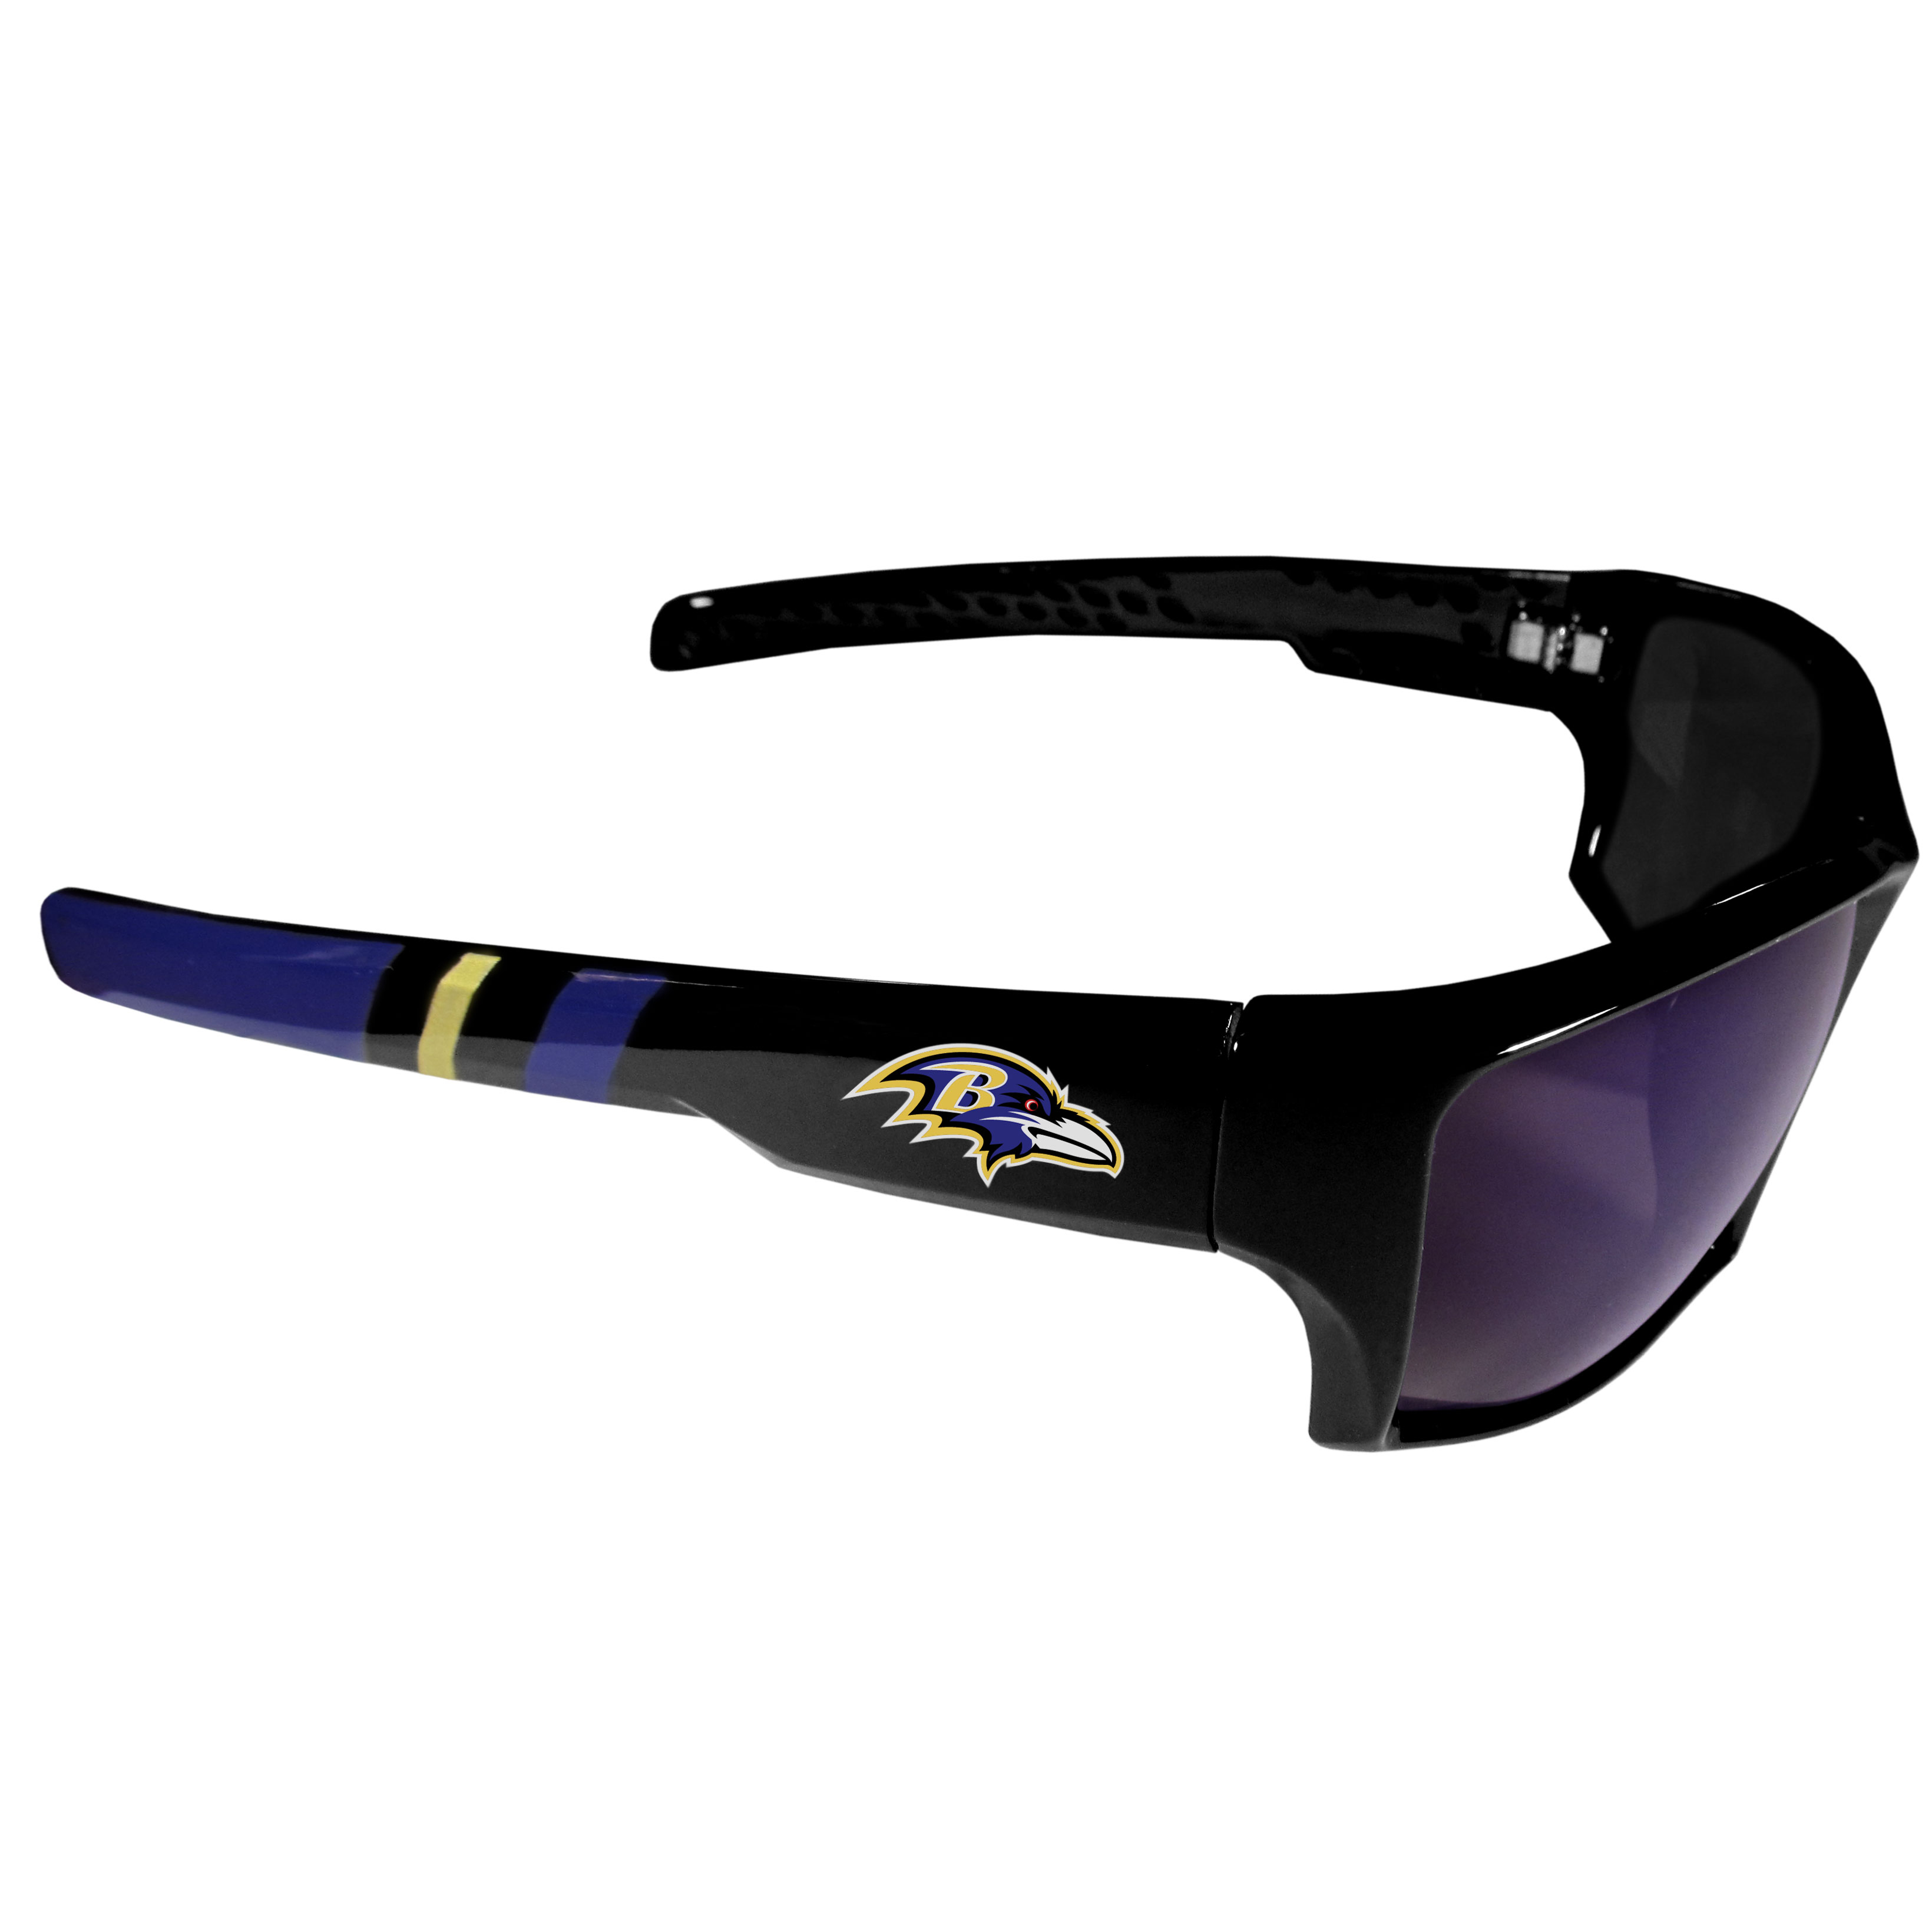 Baltimore Ravens Edge Wrap Sunglasses - Be an icon of edgy style while you're in the stadium cheering your Baltimore Ravens to victory with our polarized wrap sunglasses that feature 100% UVA/UVB rating for maximum UV protection. The light-weight frames are built to last with flex hinges for comfort and durability which make them perfect for driving or just lounging by the pool. The colorful rubber grips on the arms of these fashionable sunglasses make them perfect for someone with an active lifestyle. Whether you are hiking, fishing, boating, running on the beach, golfing or playing your favorite sport these designer frames will set you apart. Our edge wrap sunglasses are true quality eyewear at an affordable price. The wrap style frames come with team colored stripes and team logos so you can show off your die-hard team pride while protecting your eyes from those bright sun rays.